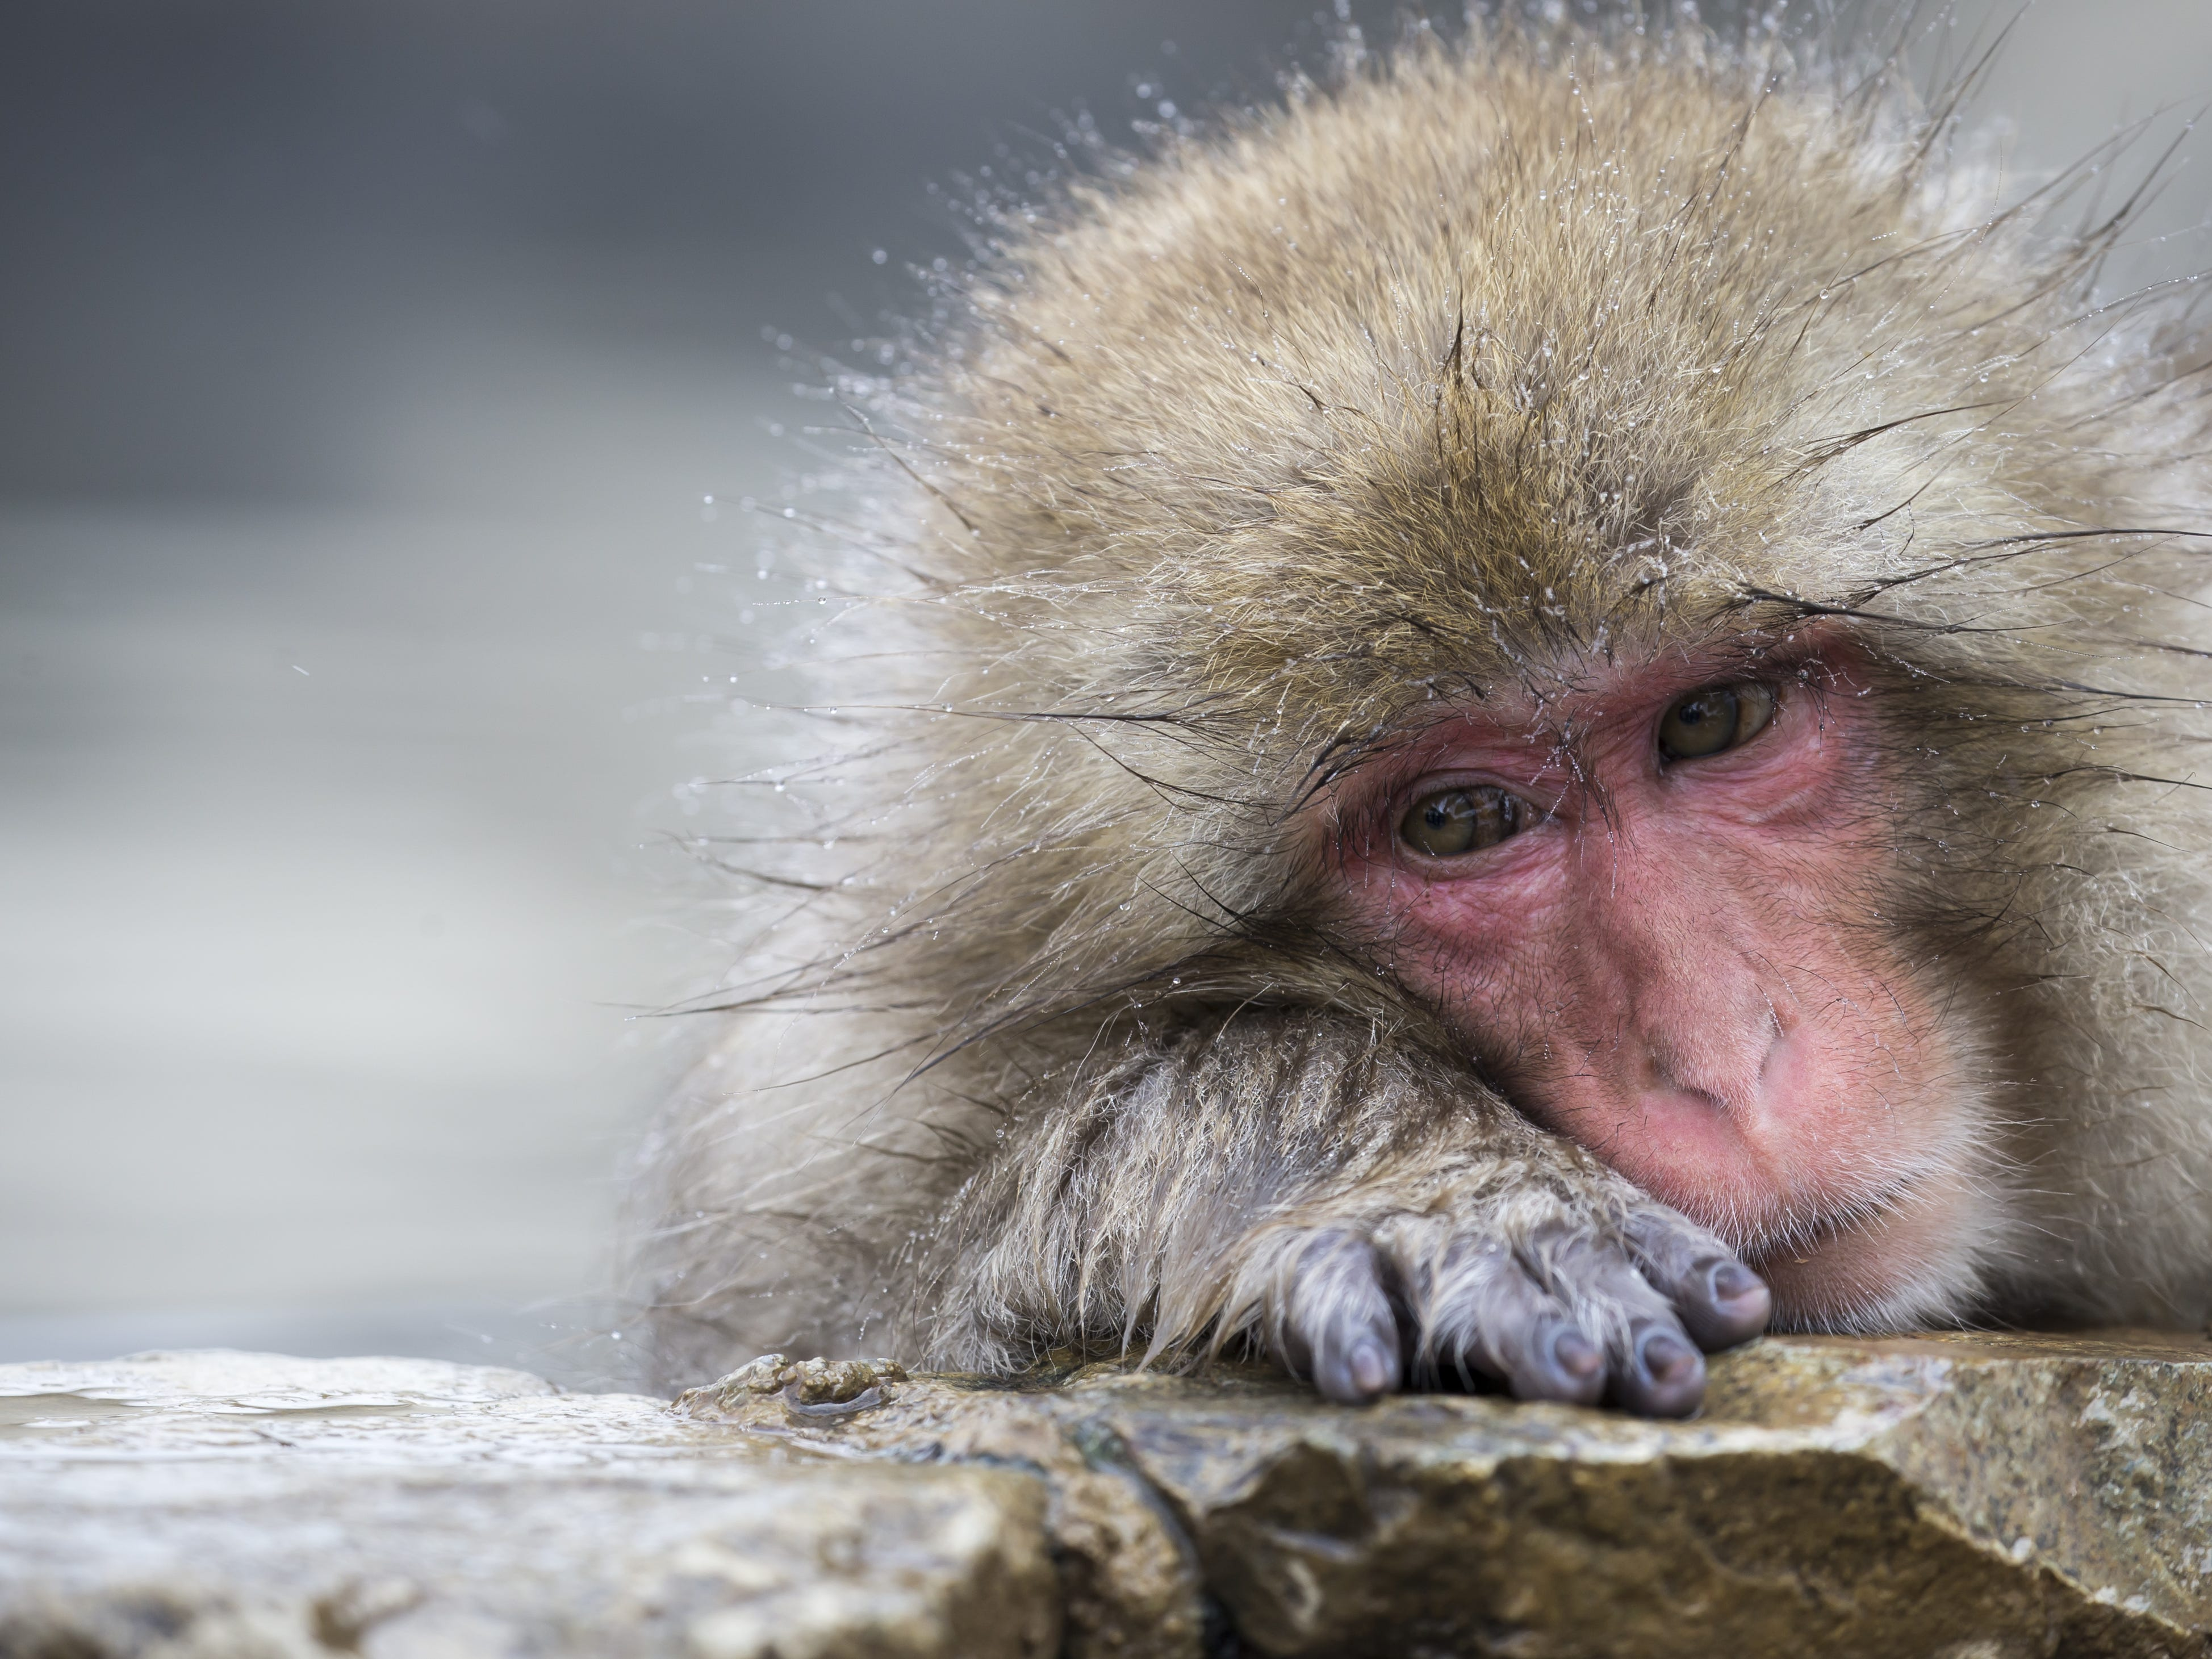 YAMANOUCHI, JAPAN - FEBRUARY 08: A Macaque monkey bathes in a hot spring at the Jigokudani Yaen-koen wild Macaque monkey park on February 8, 2019 in Yamanouchi, Japan. The wild Japanese macaques are known as snow monkeys, according to the park's official website. (Photo by Tomohiro Ohsumi/Getty Images) ORG XMIT: 775292339 ORIG FILE ID: 1128215824